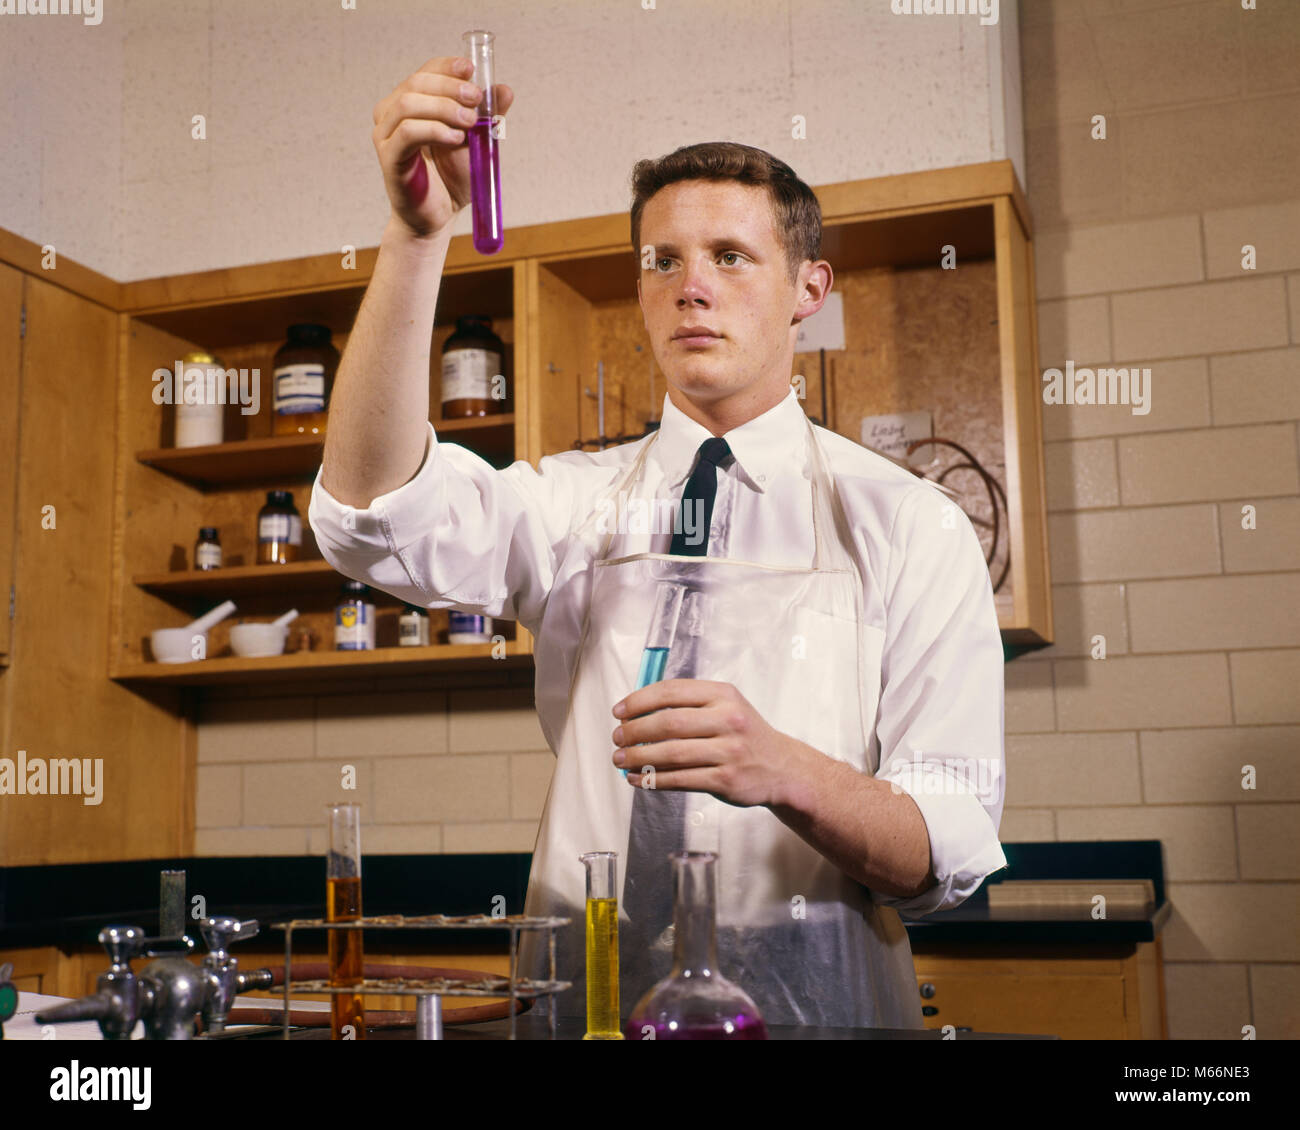 1960s MALE HIGH SCHOOL TEENAGE STUDENT IN CHEMISTRY LABORATORY HOLDING TEST TUBES - ks2094 HAR001 HARS ONE PERSON - Stock Image